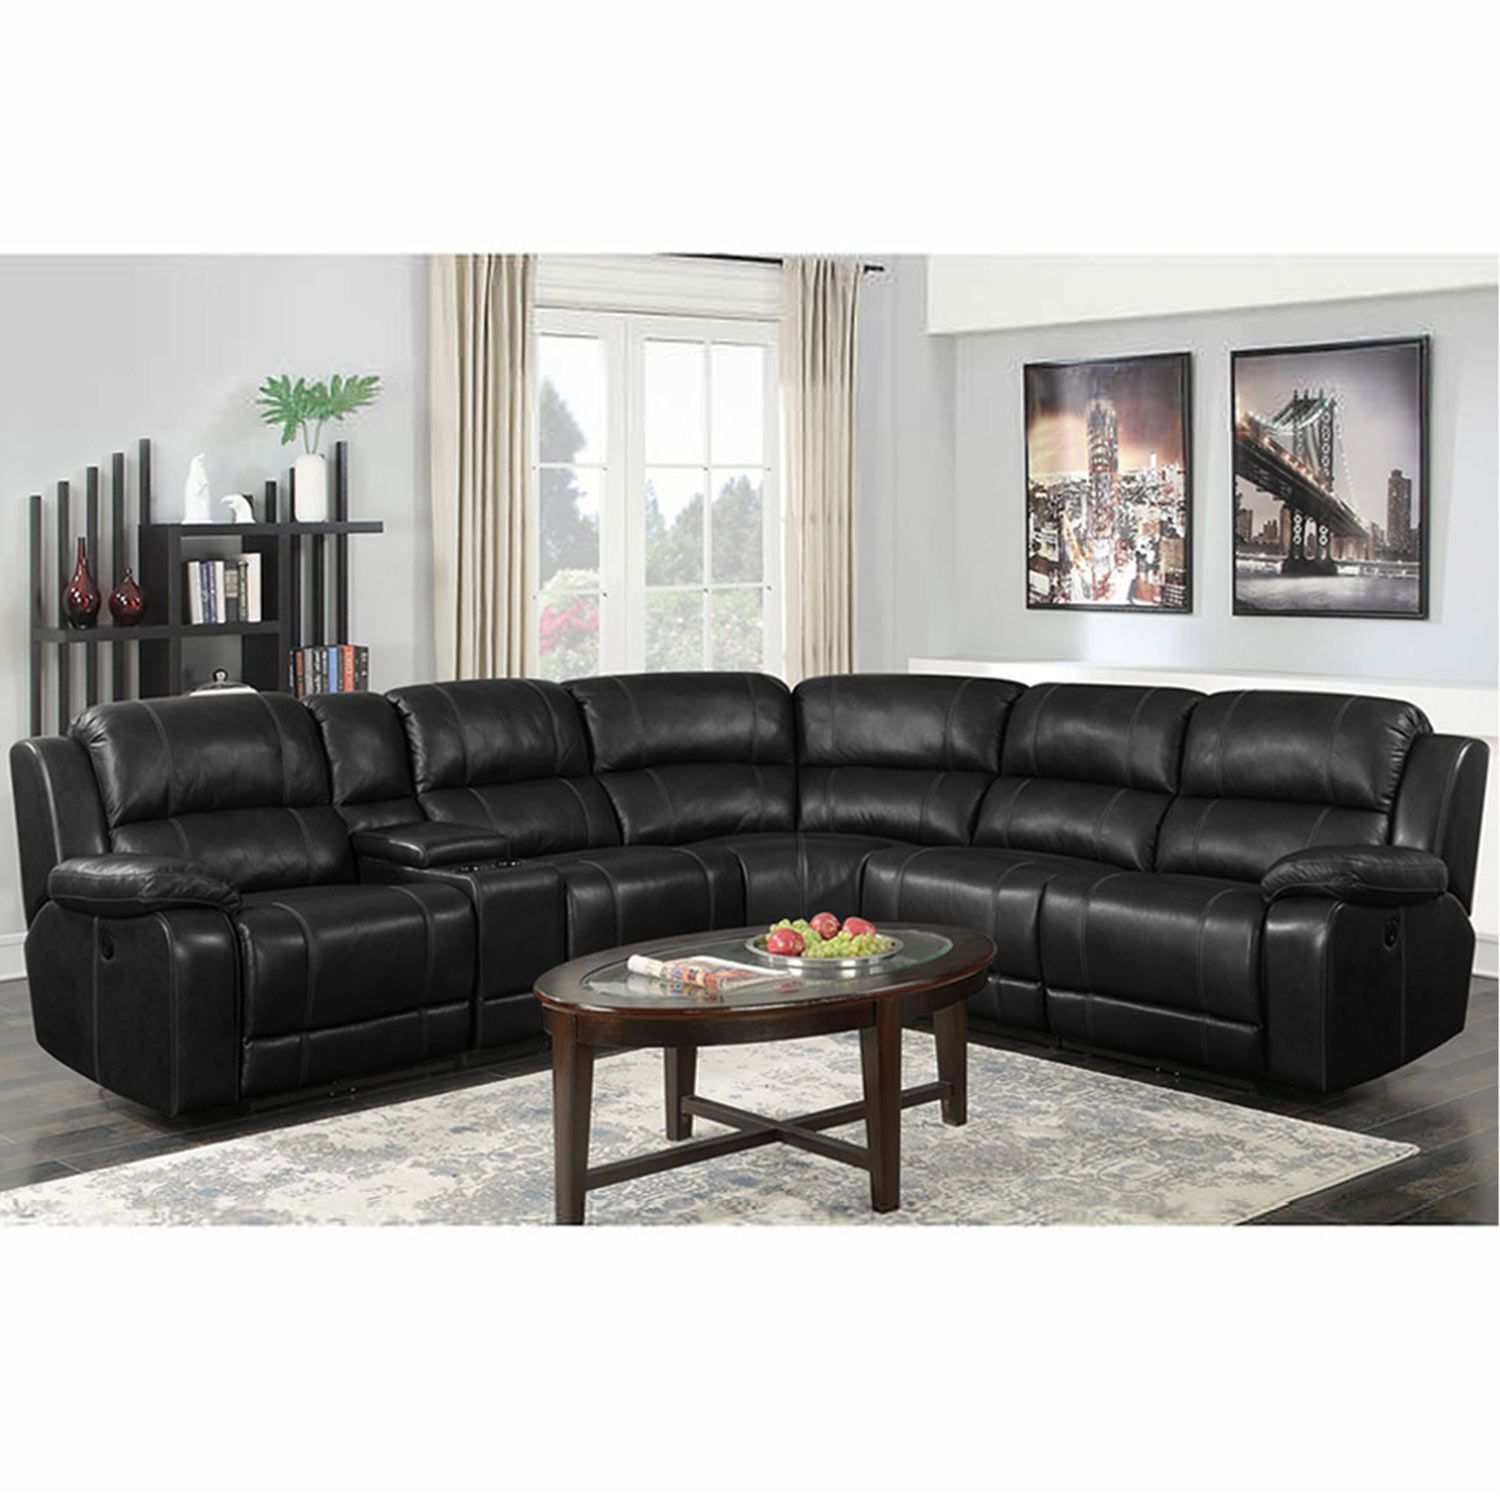 Buy Chesteron Leatherette 6 Seater Recliner Sofa Set Black Online In India Wooden Street In 2021 Reclining Sectional Sofa Set Sofa Set Designs